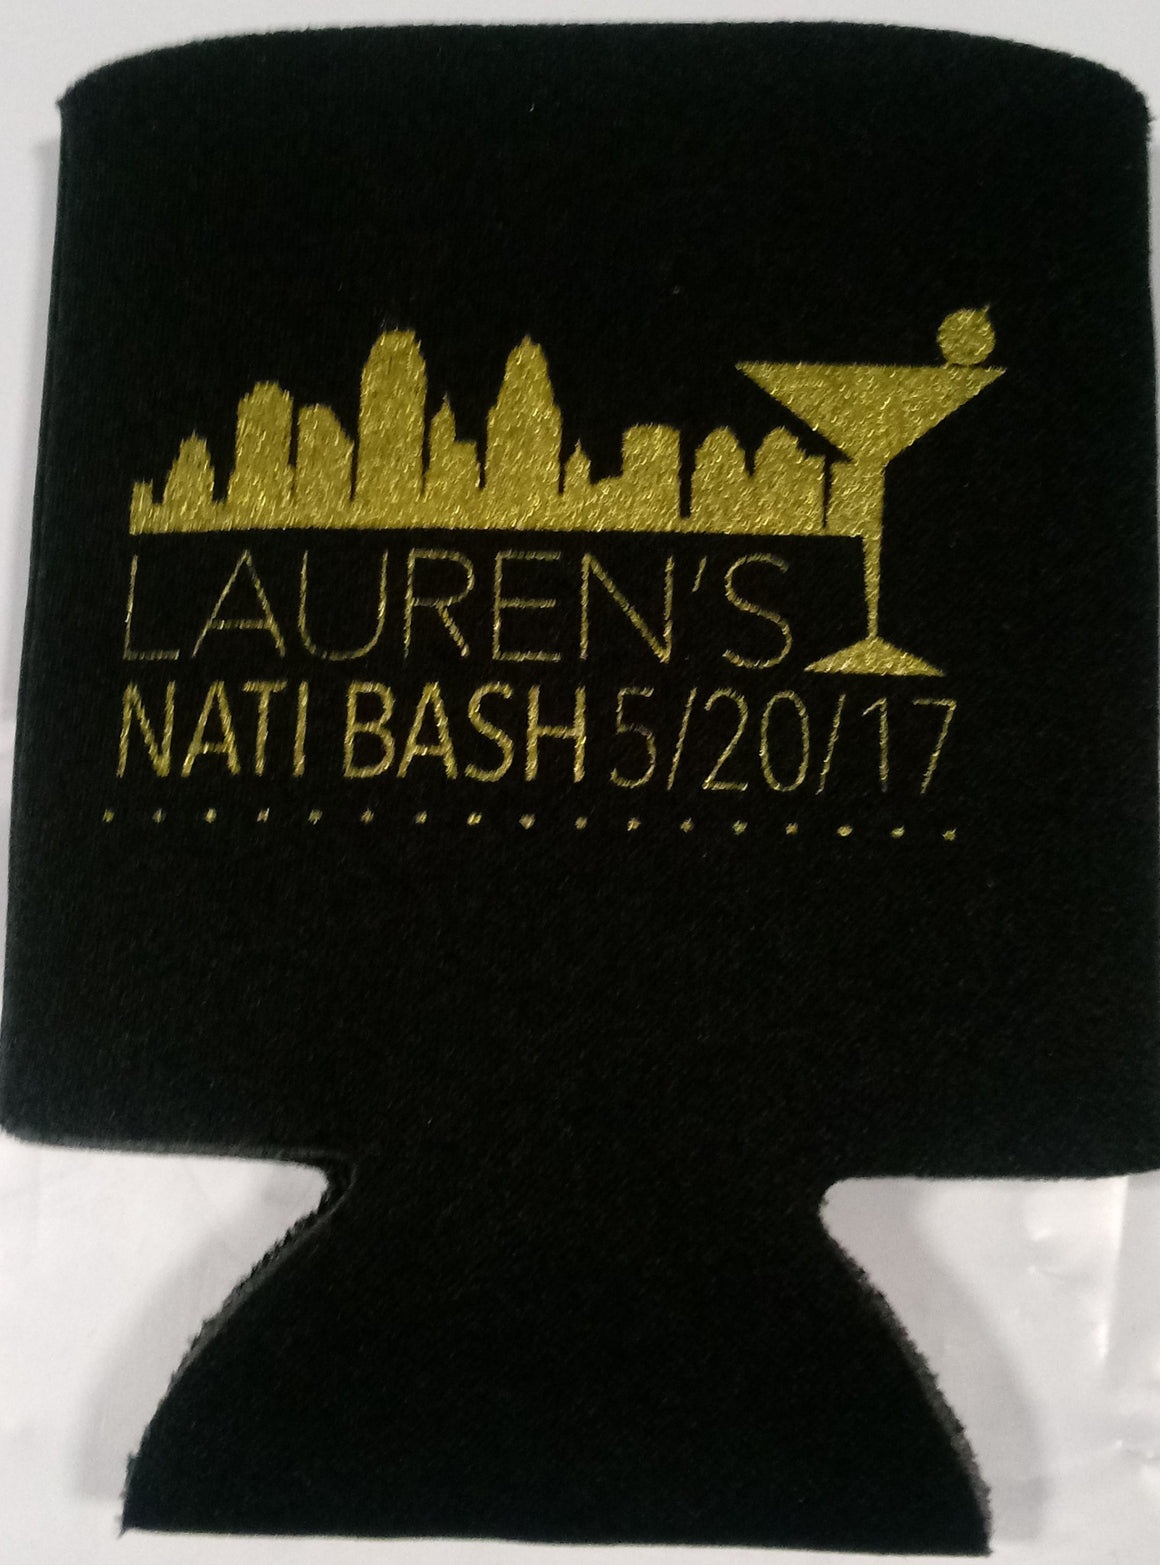 Nashville TN Bachelorette coozie Personalized low minimums